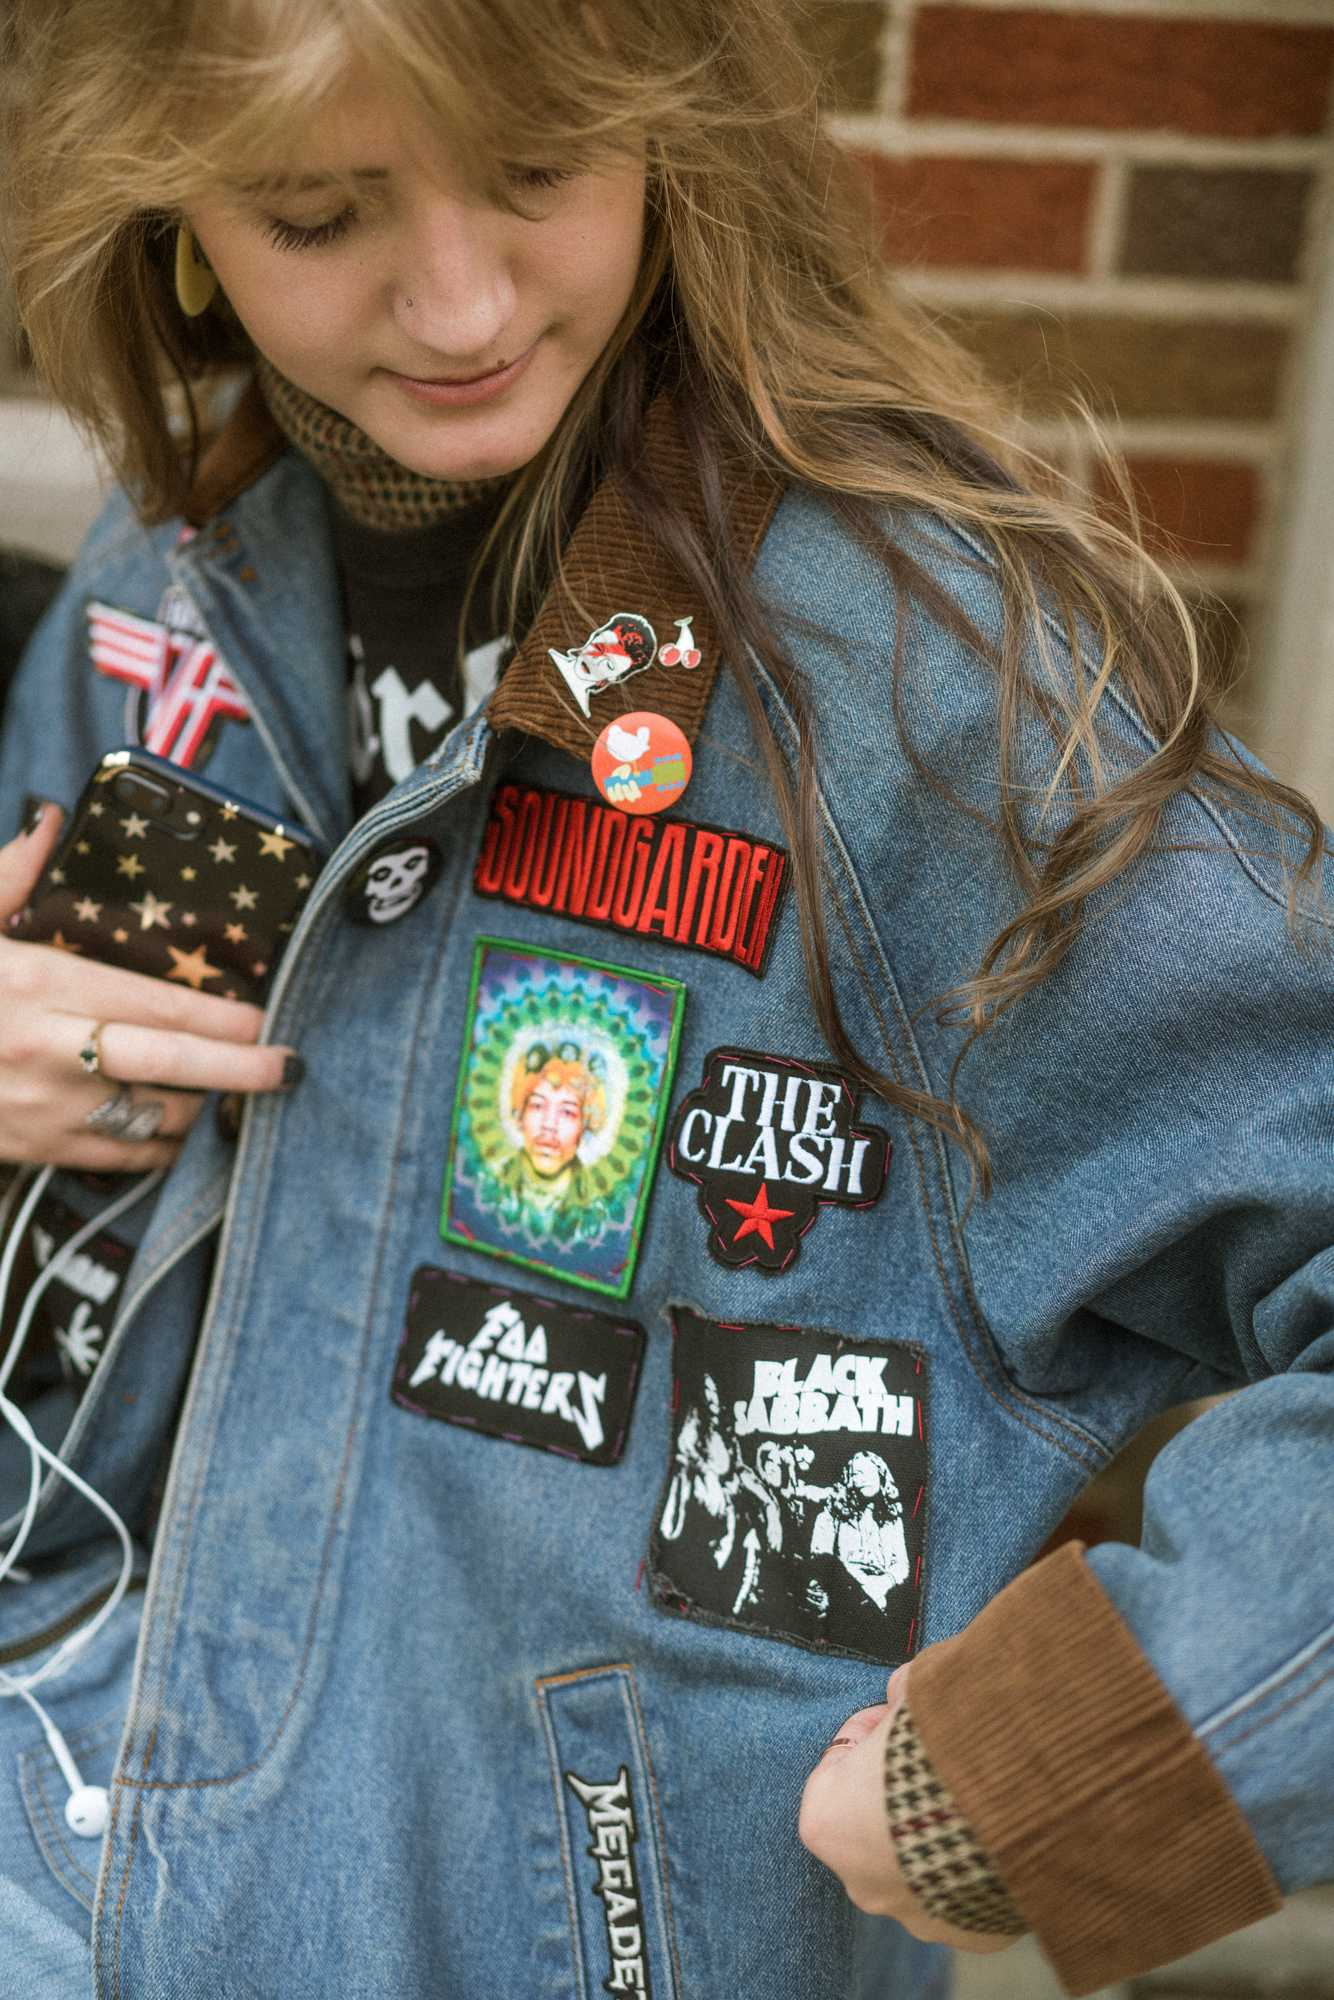 Shanelle Meyer shows off her patches on her demin jacket.